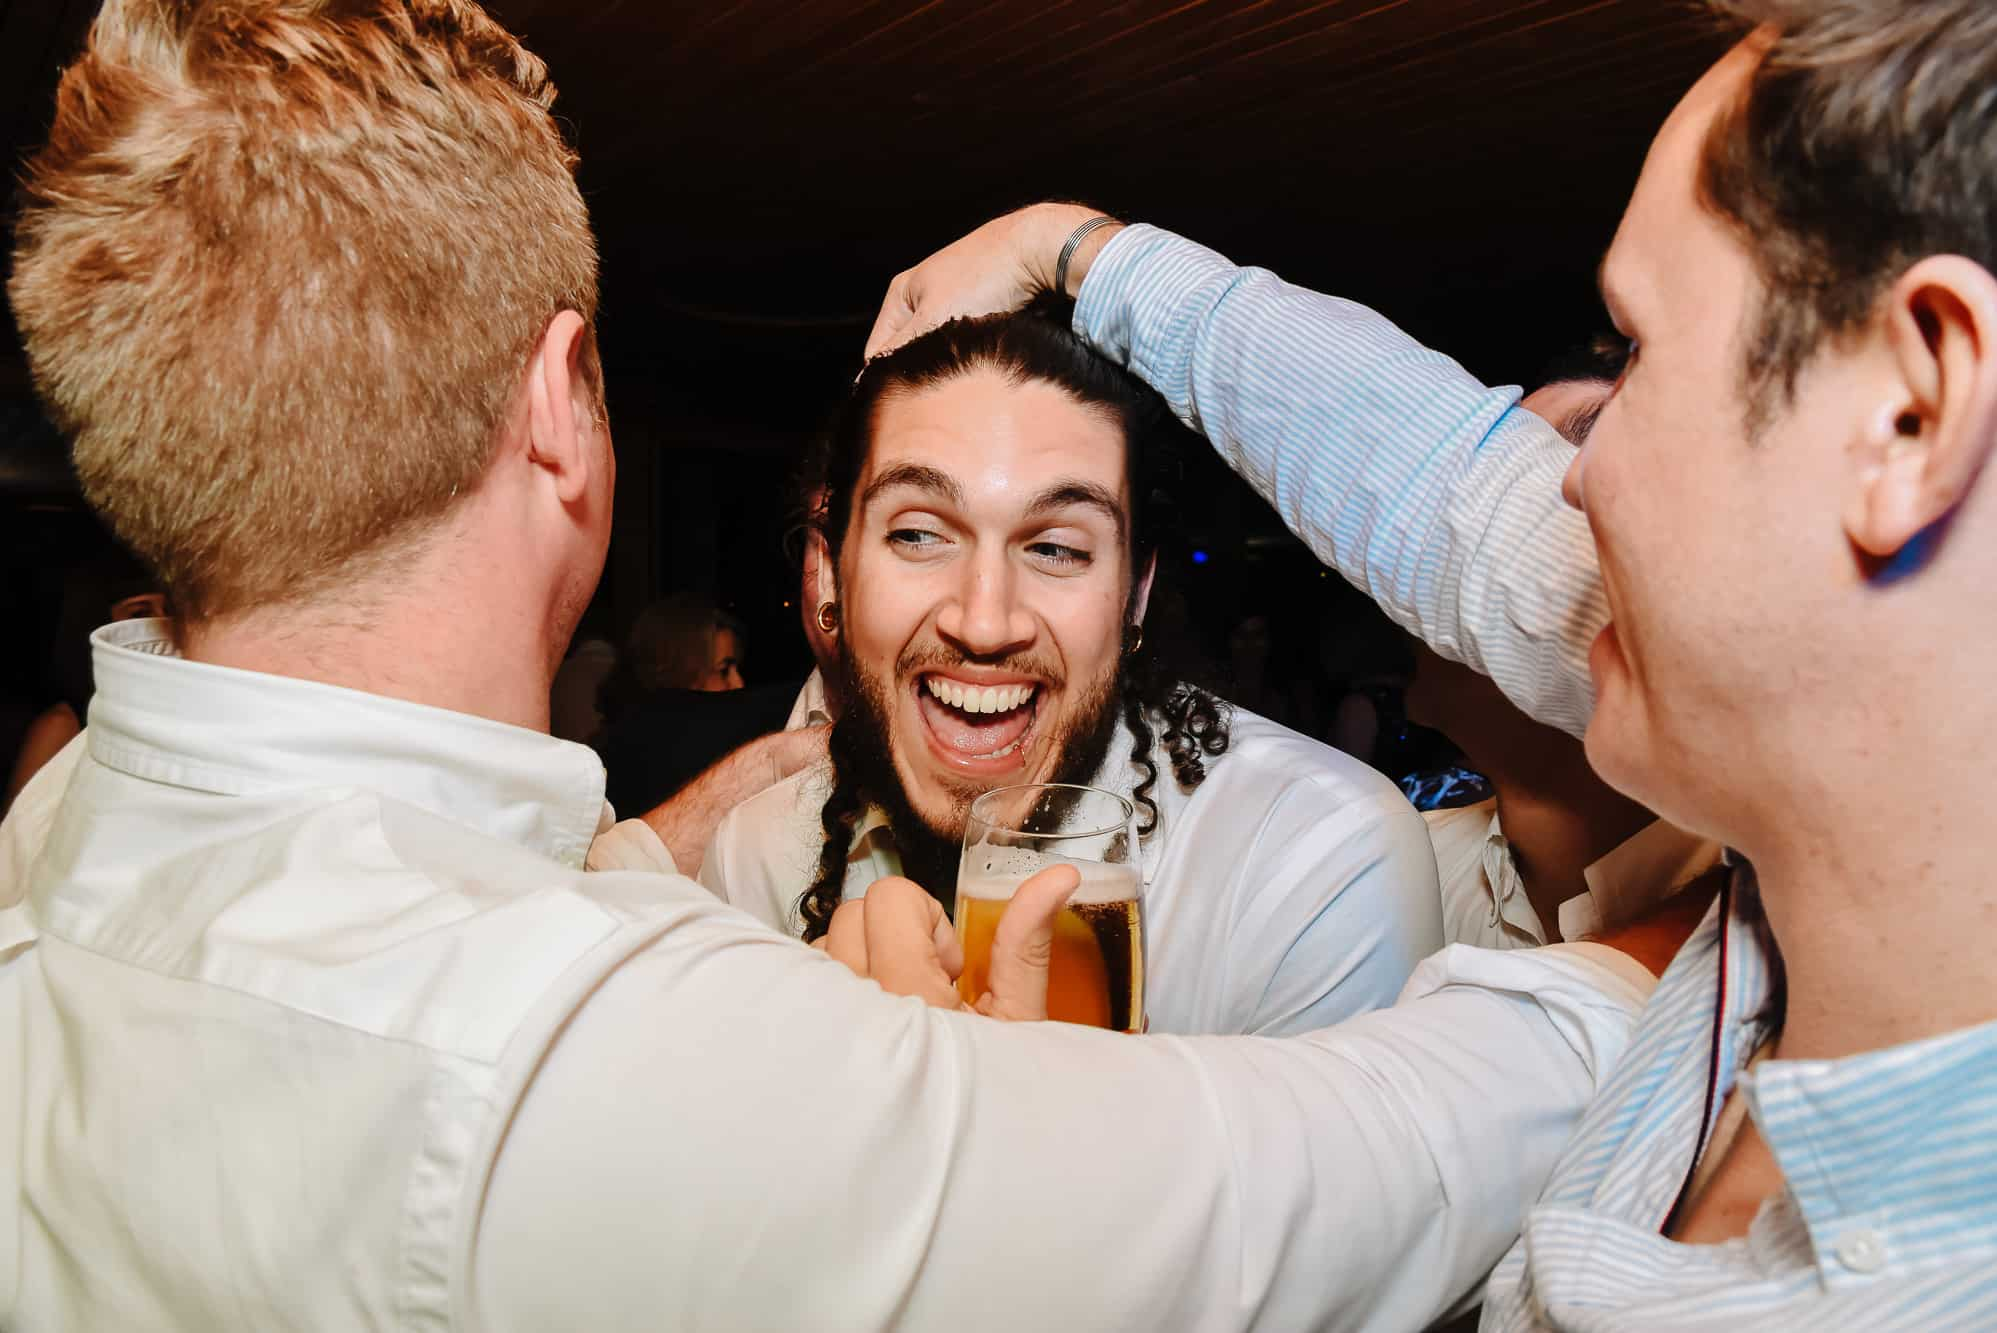 Groom being grabbed by friends and laughing